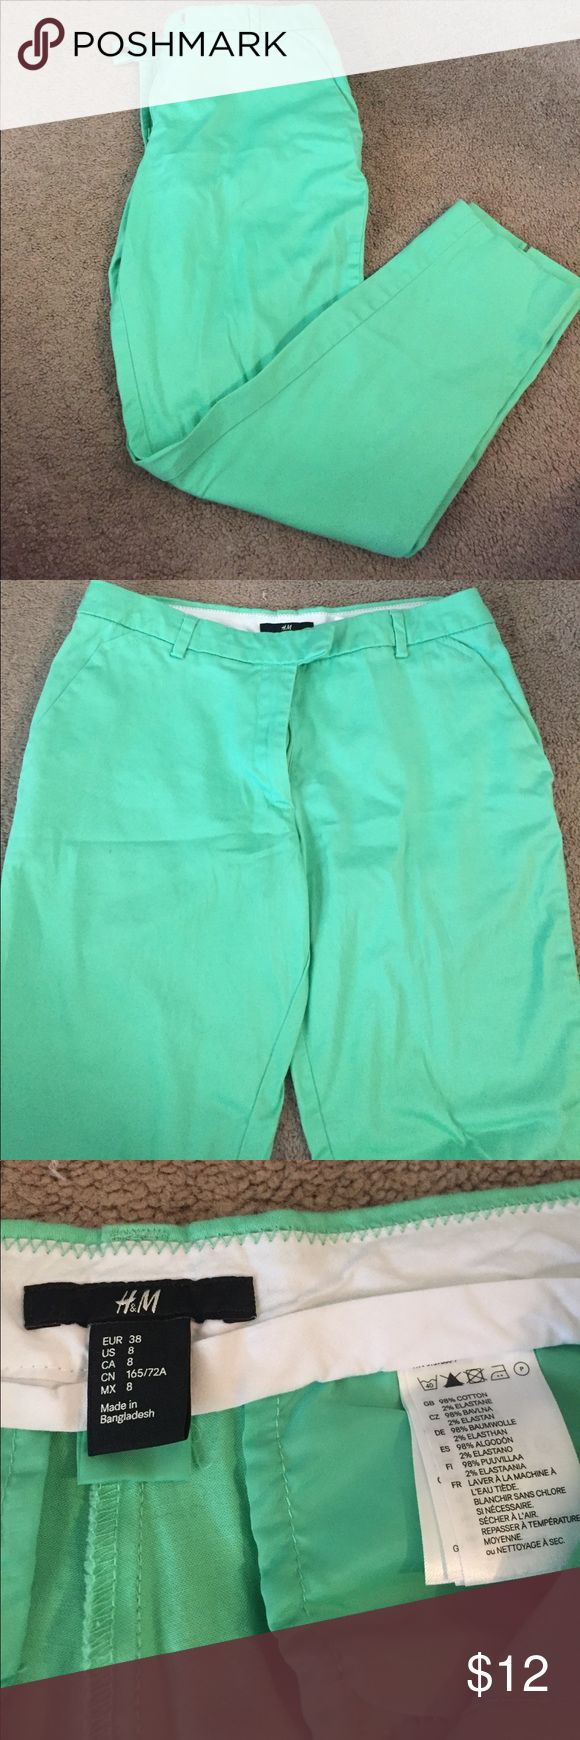 H&M mint green pant Dressy pants. No stains or rips. Zipper works great and only wore maybe two times H&M Pants